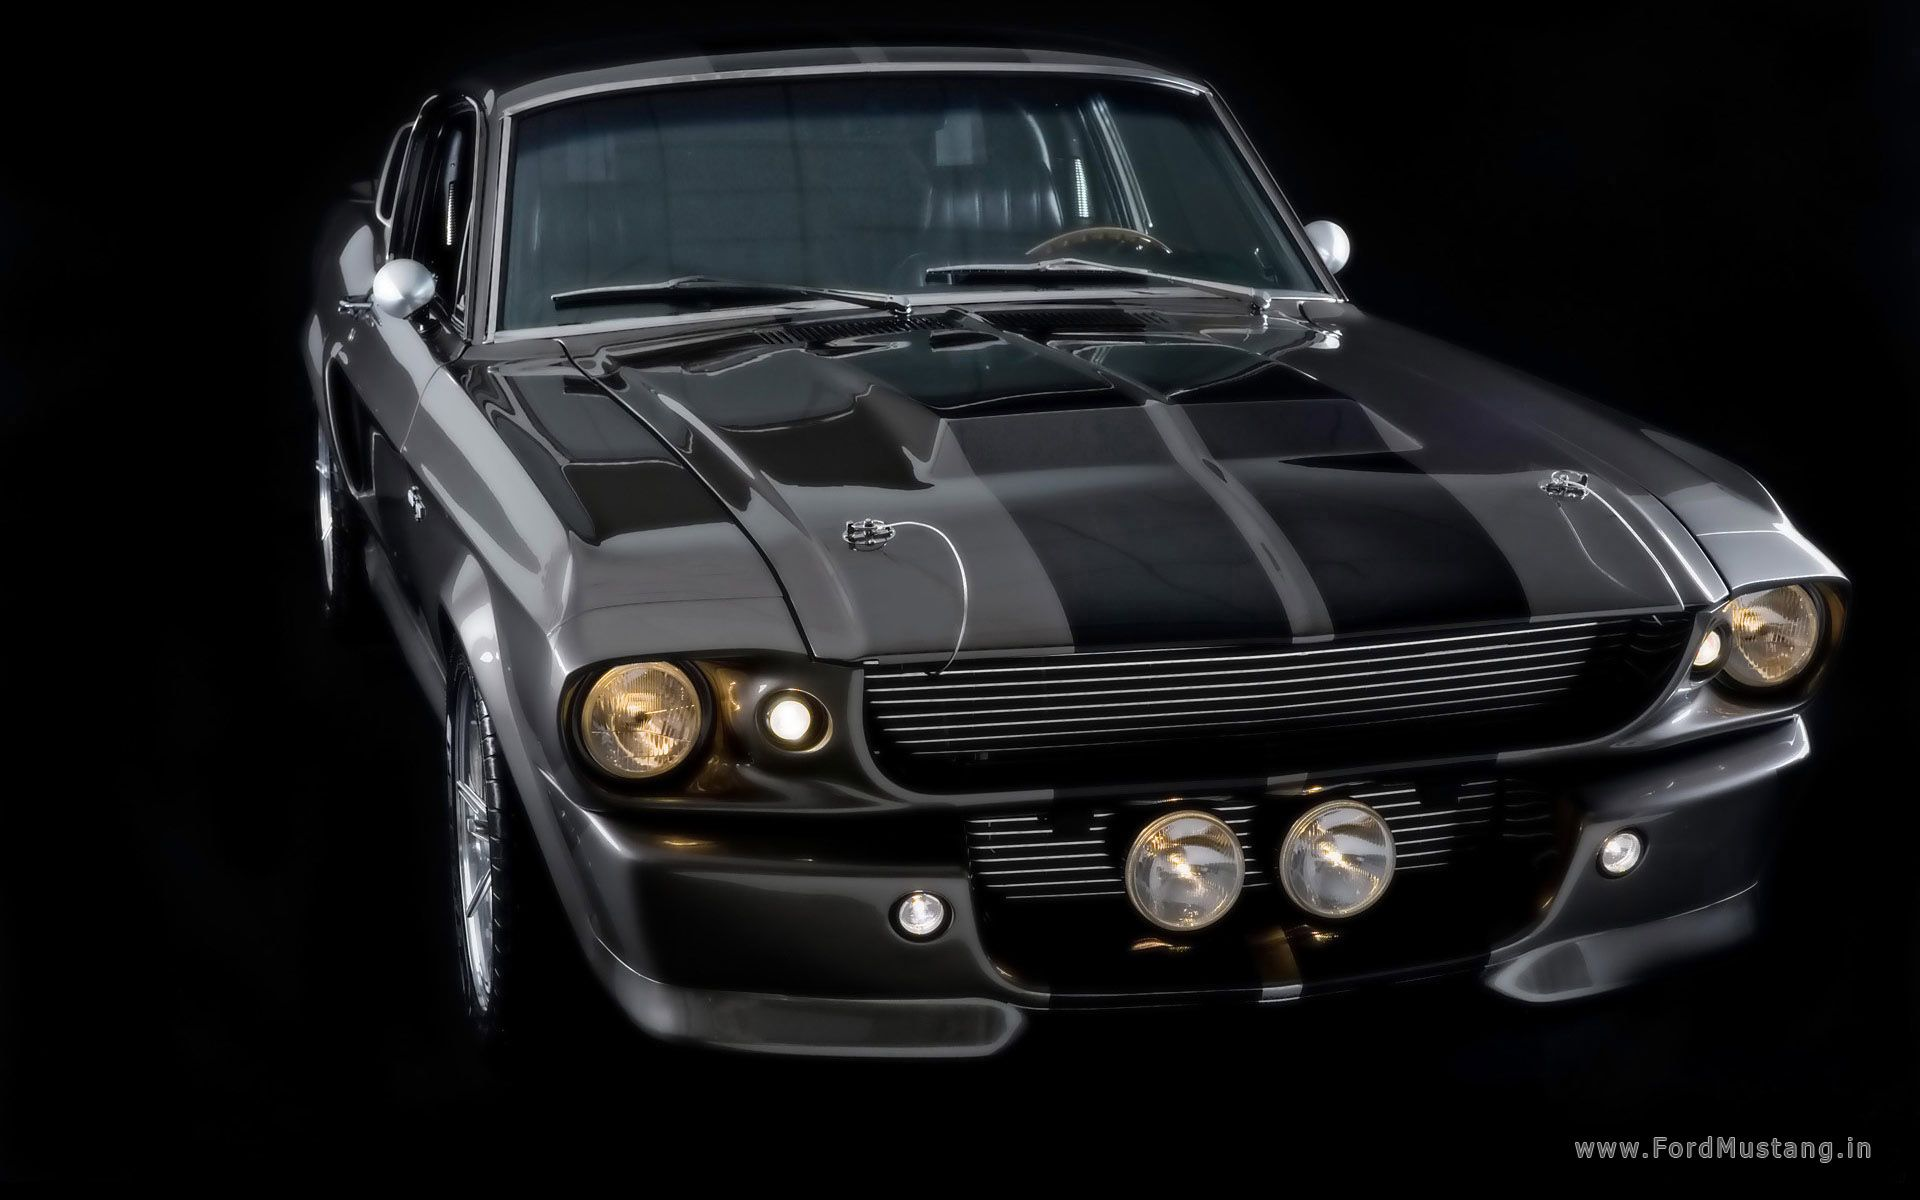 The Green Hornet Shelby The Interest In Seconds The Producers Malaysia Beaches And Islands Mustang Fastback